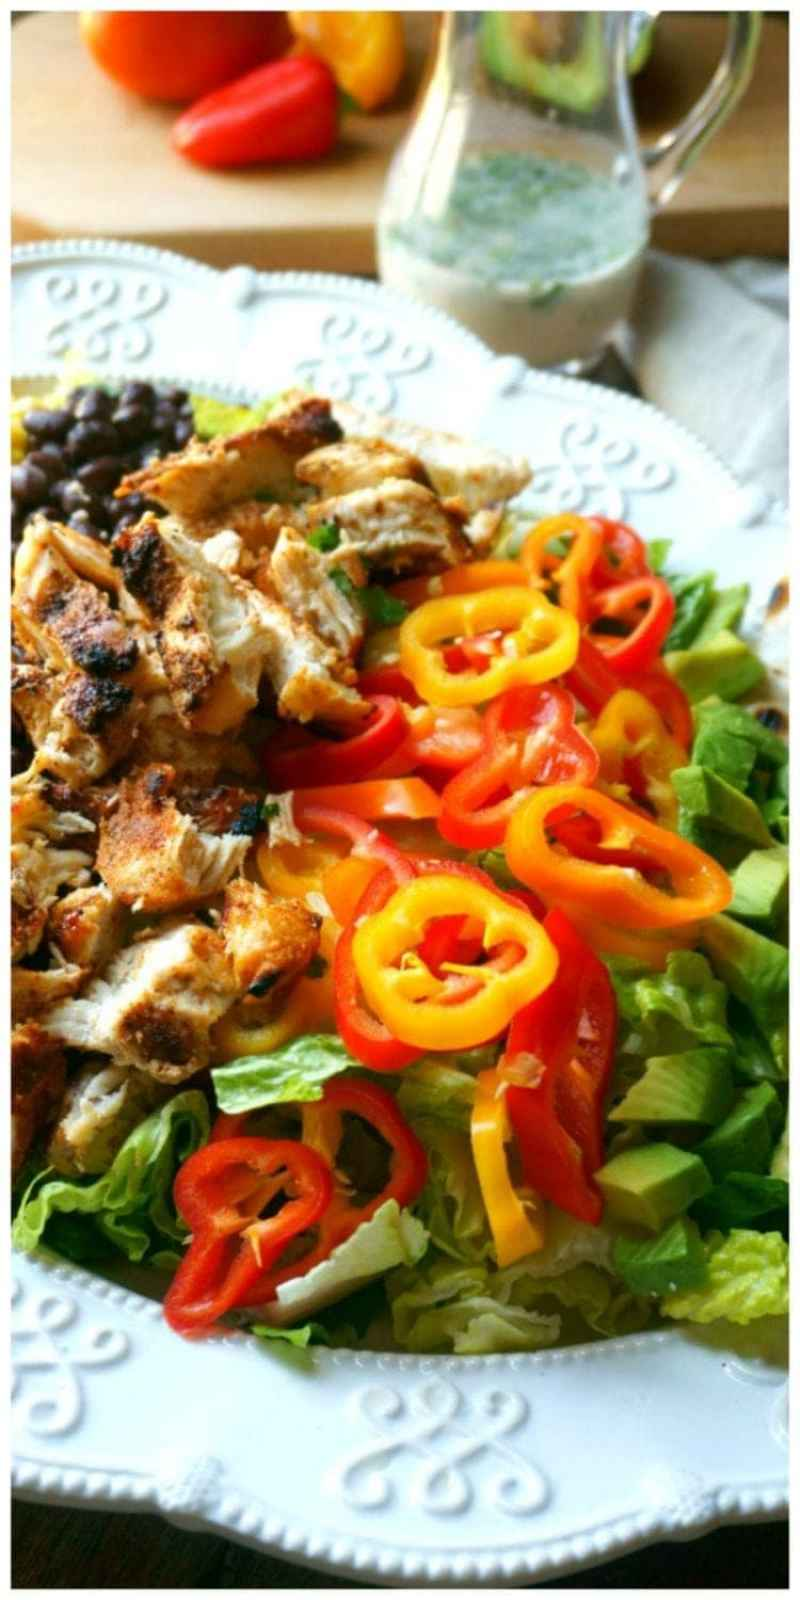 A southwestern spin on a classic cobb salad--crisp romaine is topped with corn, avocado, tomatoes, peppers, grilled chicken. Served with cheese quesadillas in place of croutons and completed with a Cilantro Lime Dressing.